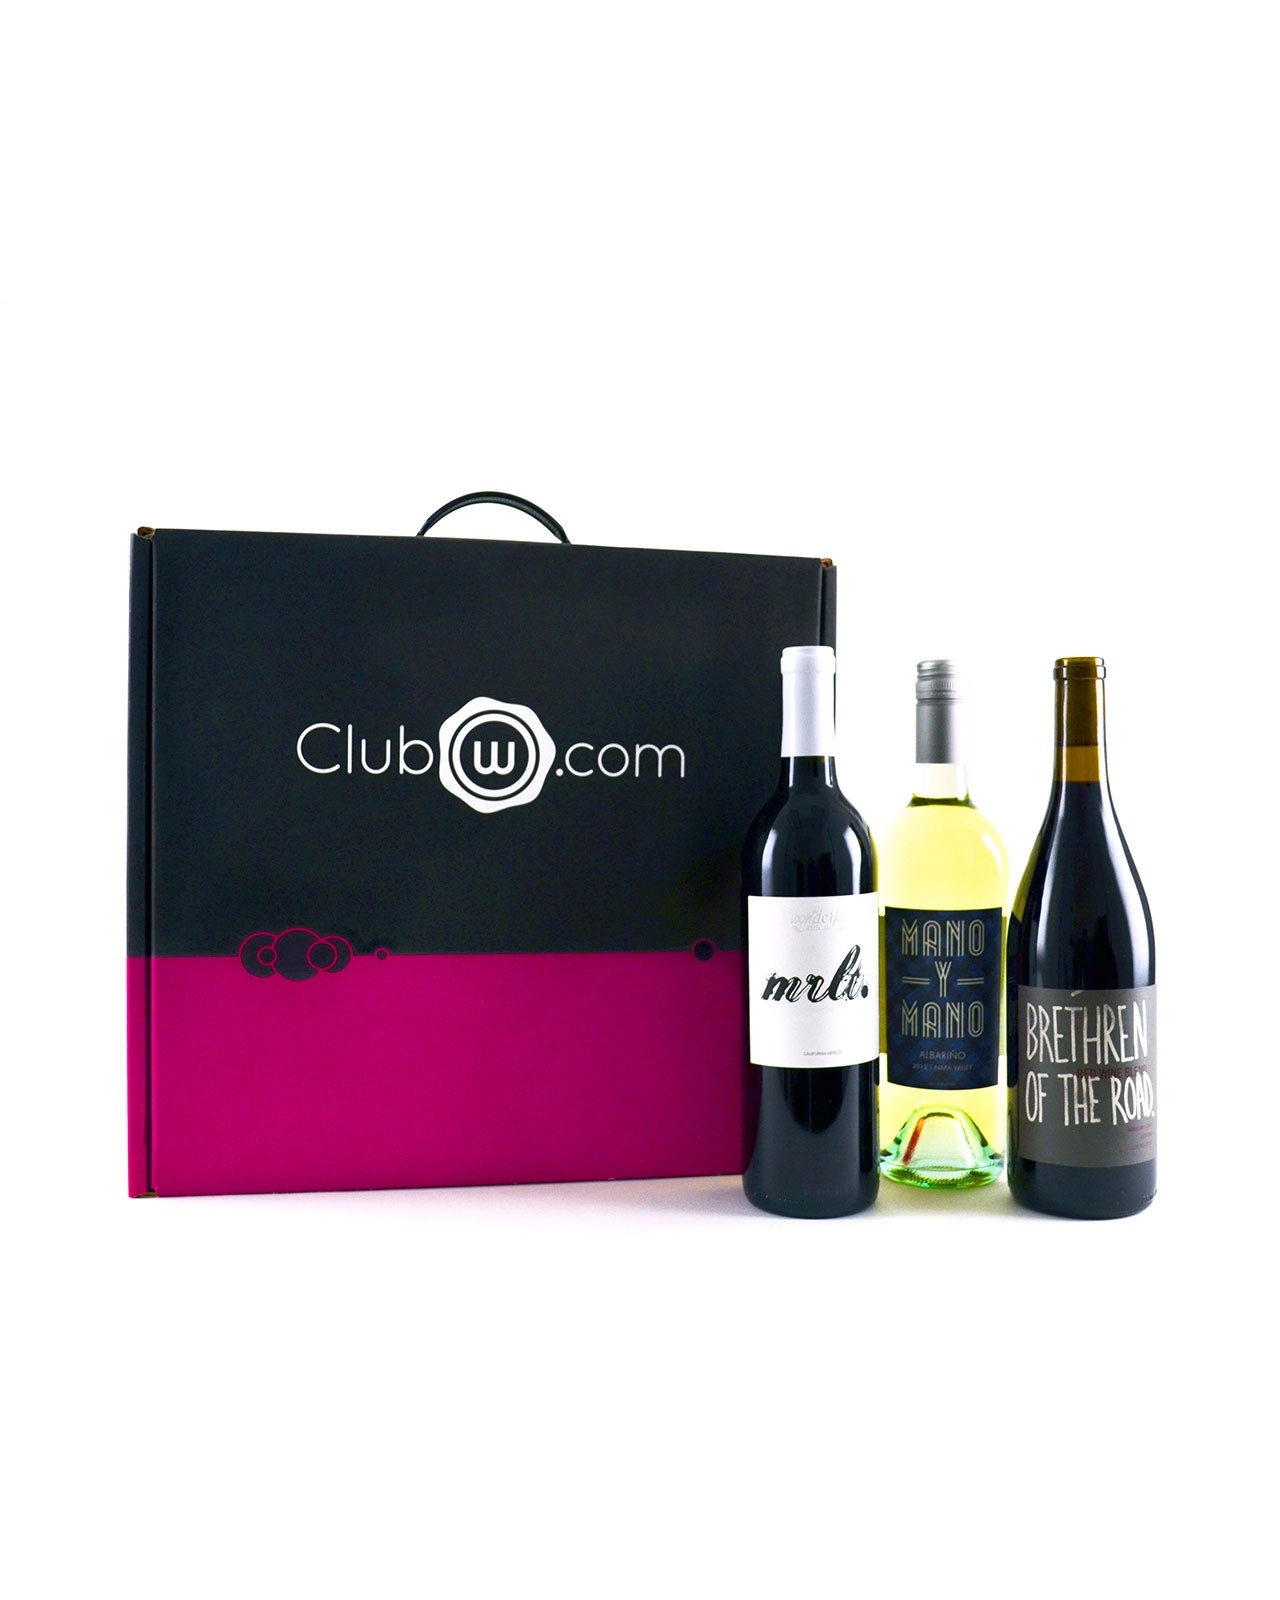 group-bachelorette-party-gifts-club-w-wine-0316.jpg